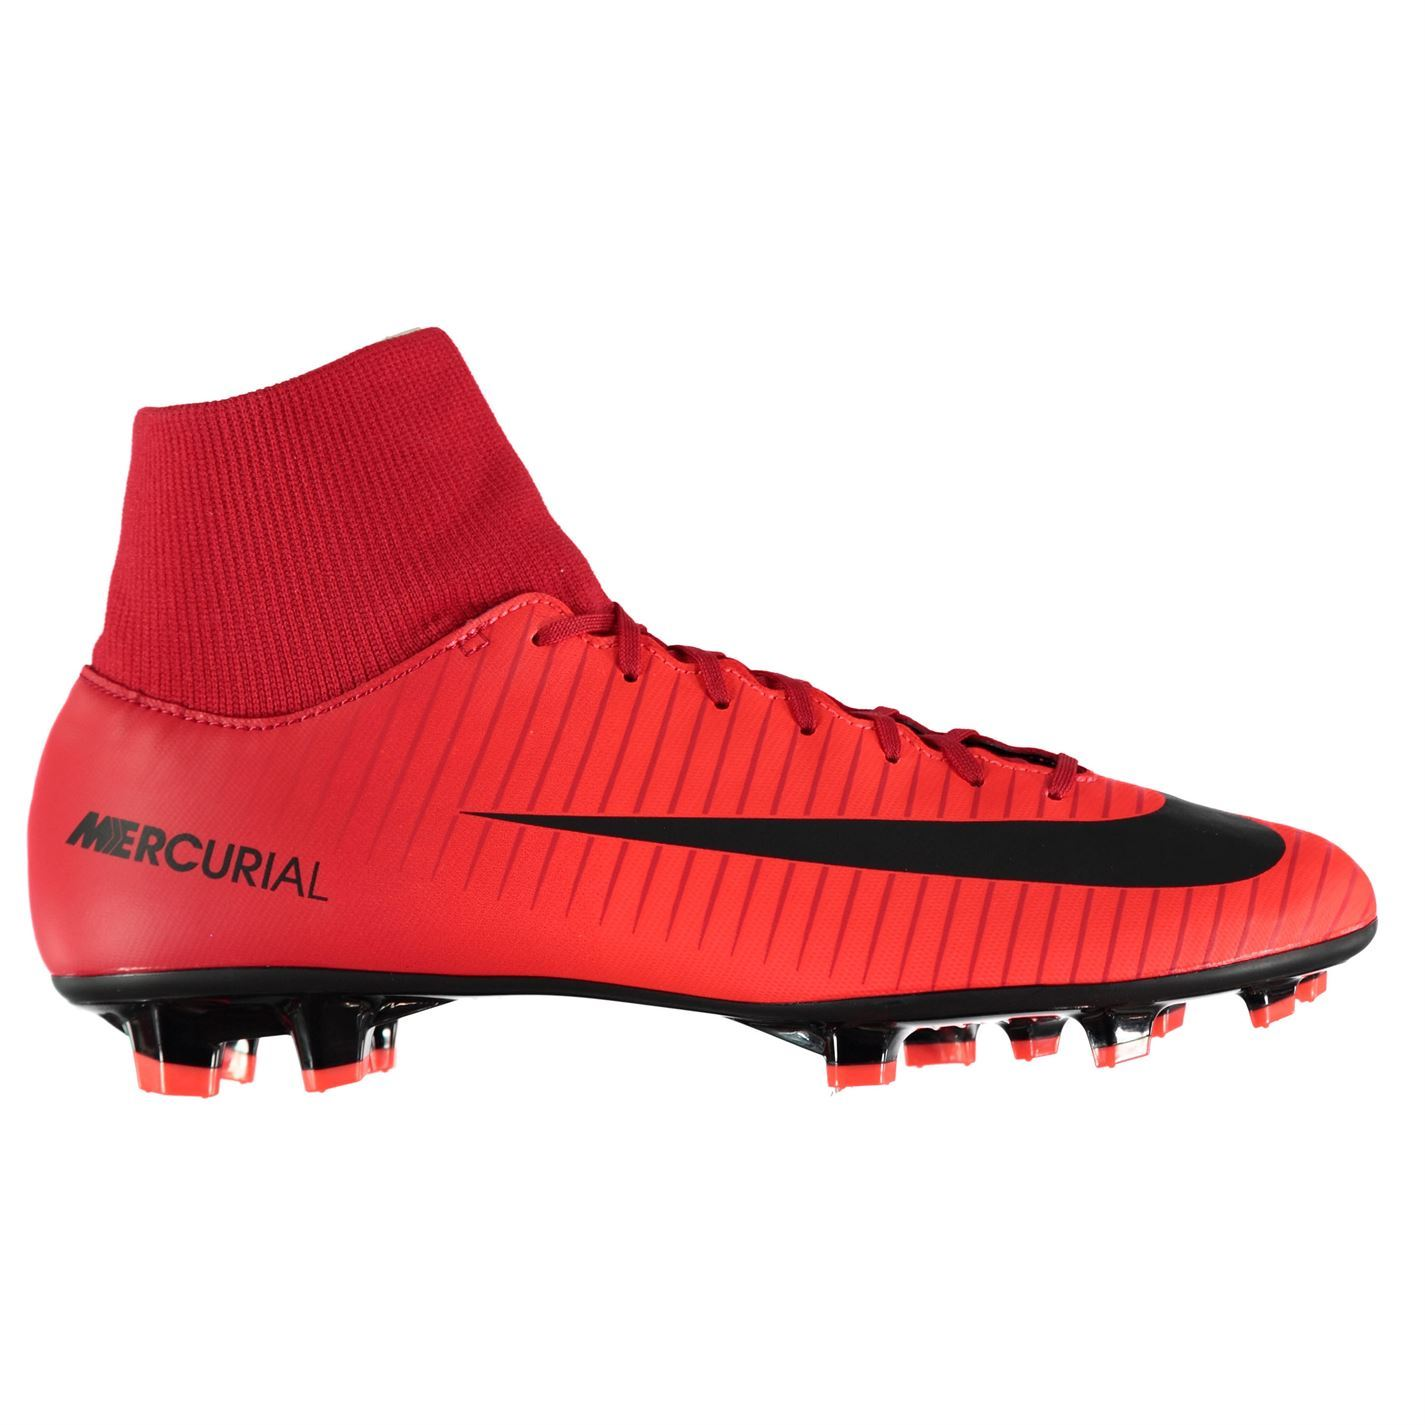 competitive price b672a ddd21 ... Nike Mercurial Victory DF FG Firm Ground Football Boots Mens Soccer Shoe  Cleats